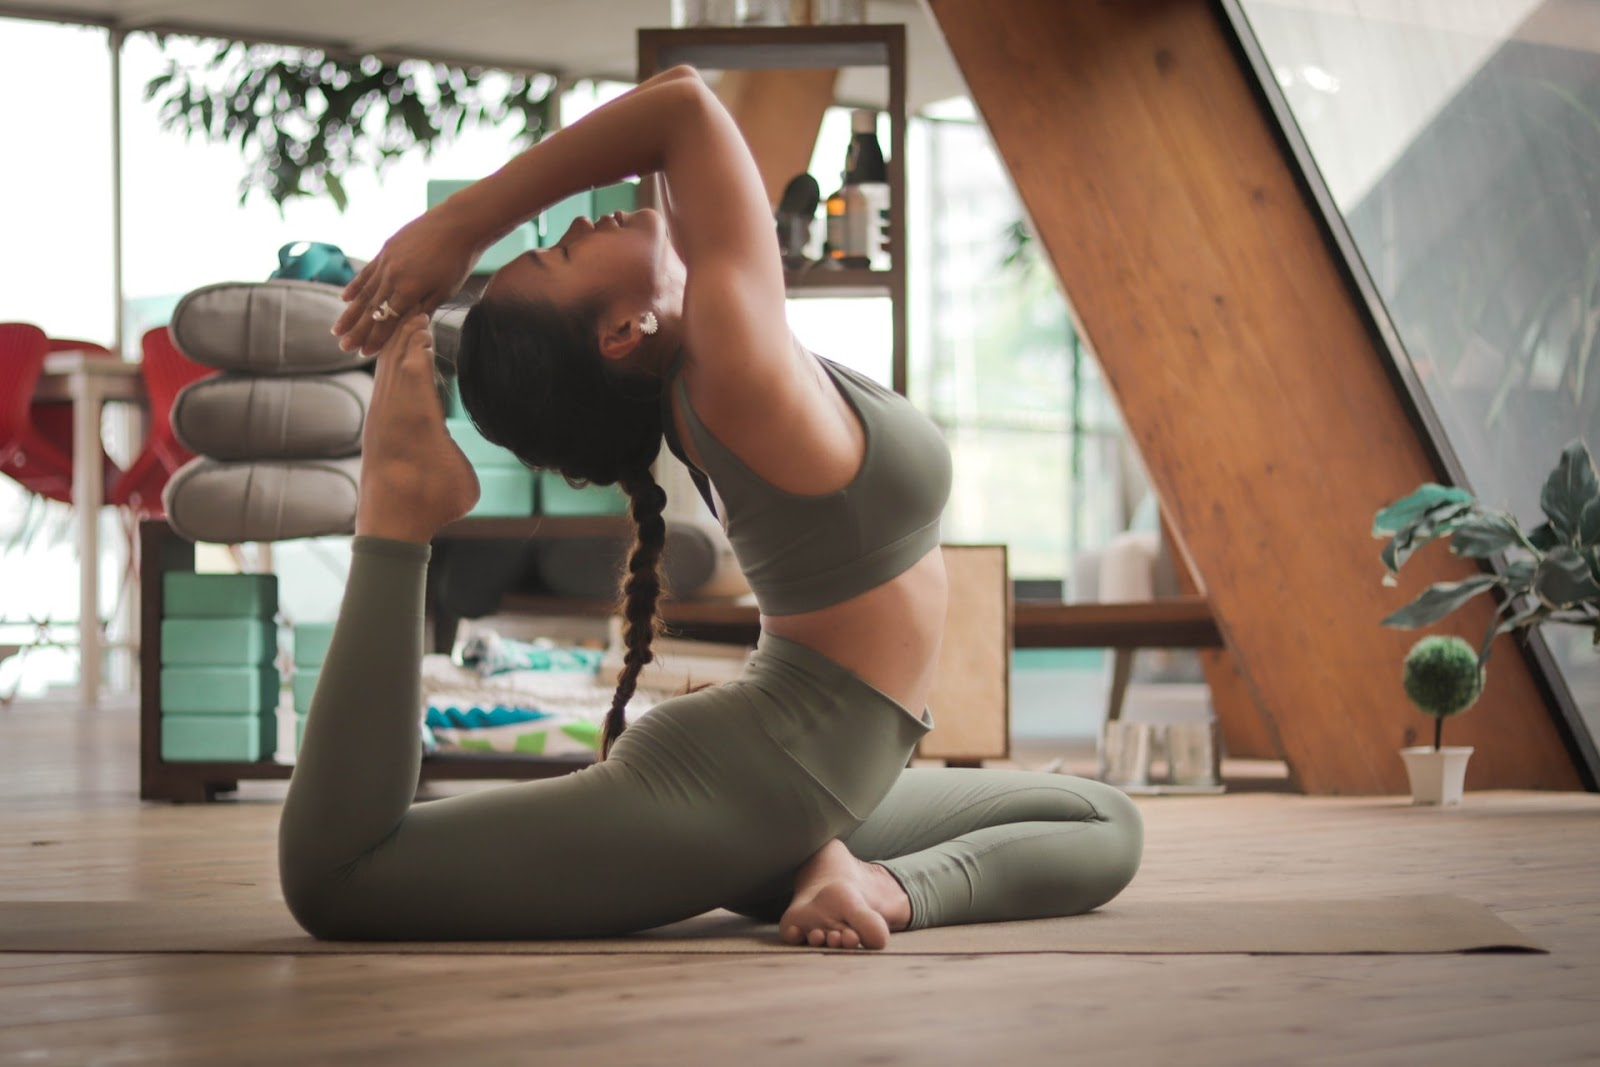 Indoor activities to keep you fit, a girl trying a yoga pose on her mat